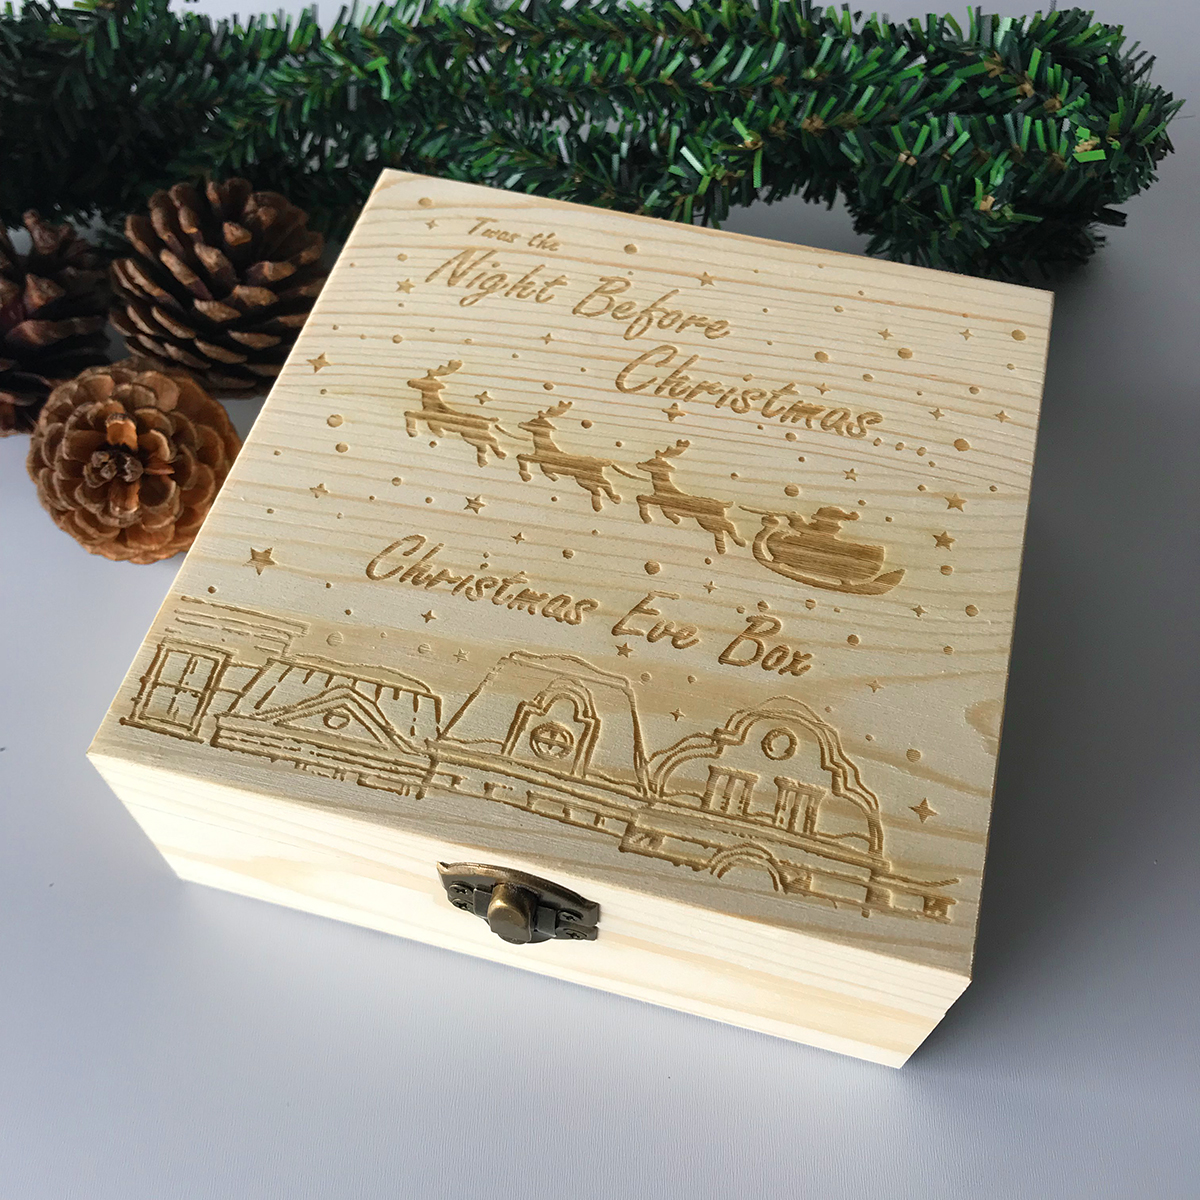 Christmas Eve Box Engraved Wooden Decorations Wood Gift Xmas Childrens Wooden Christmas Eve Box Christmas Snowmobiles